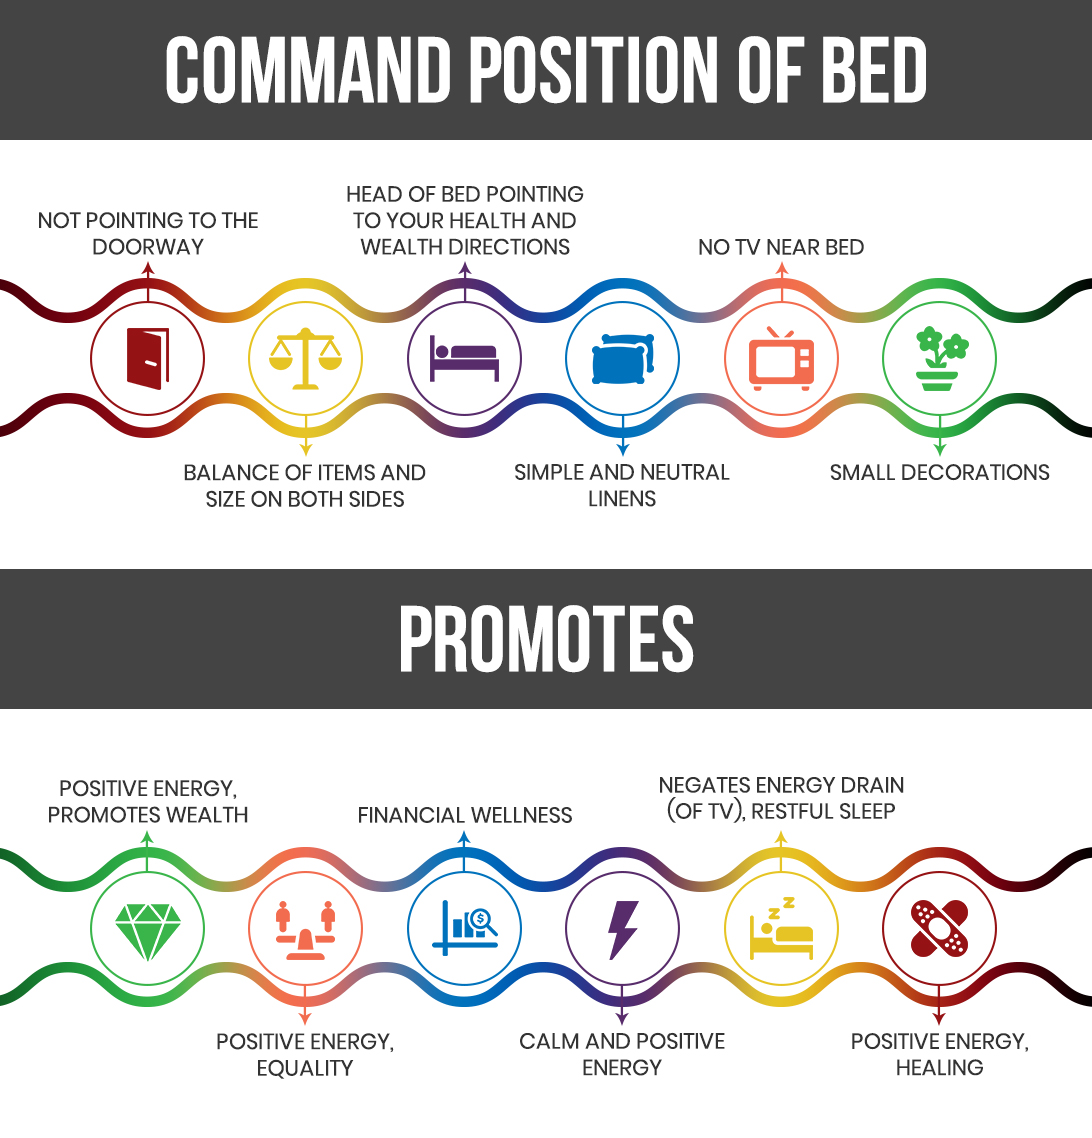 Command Position of Bed